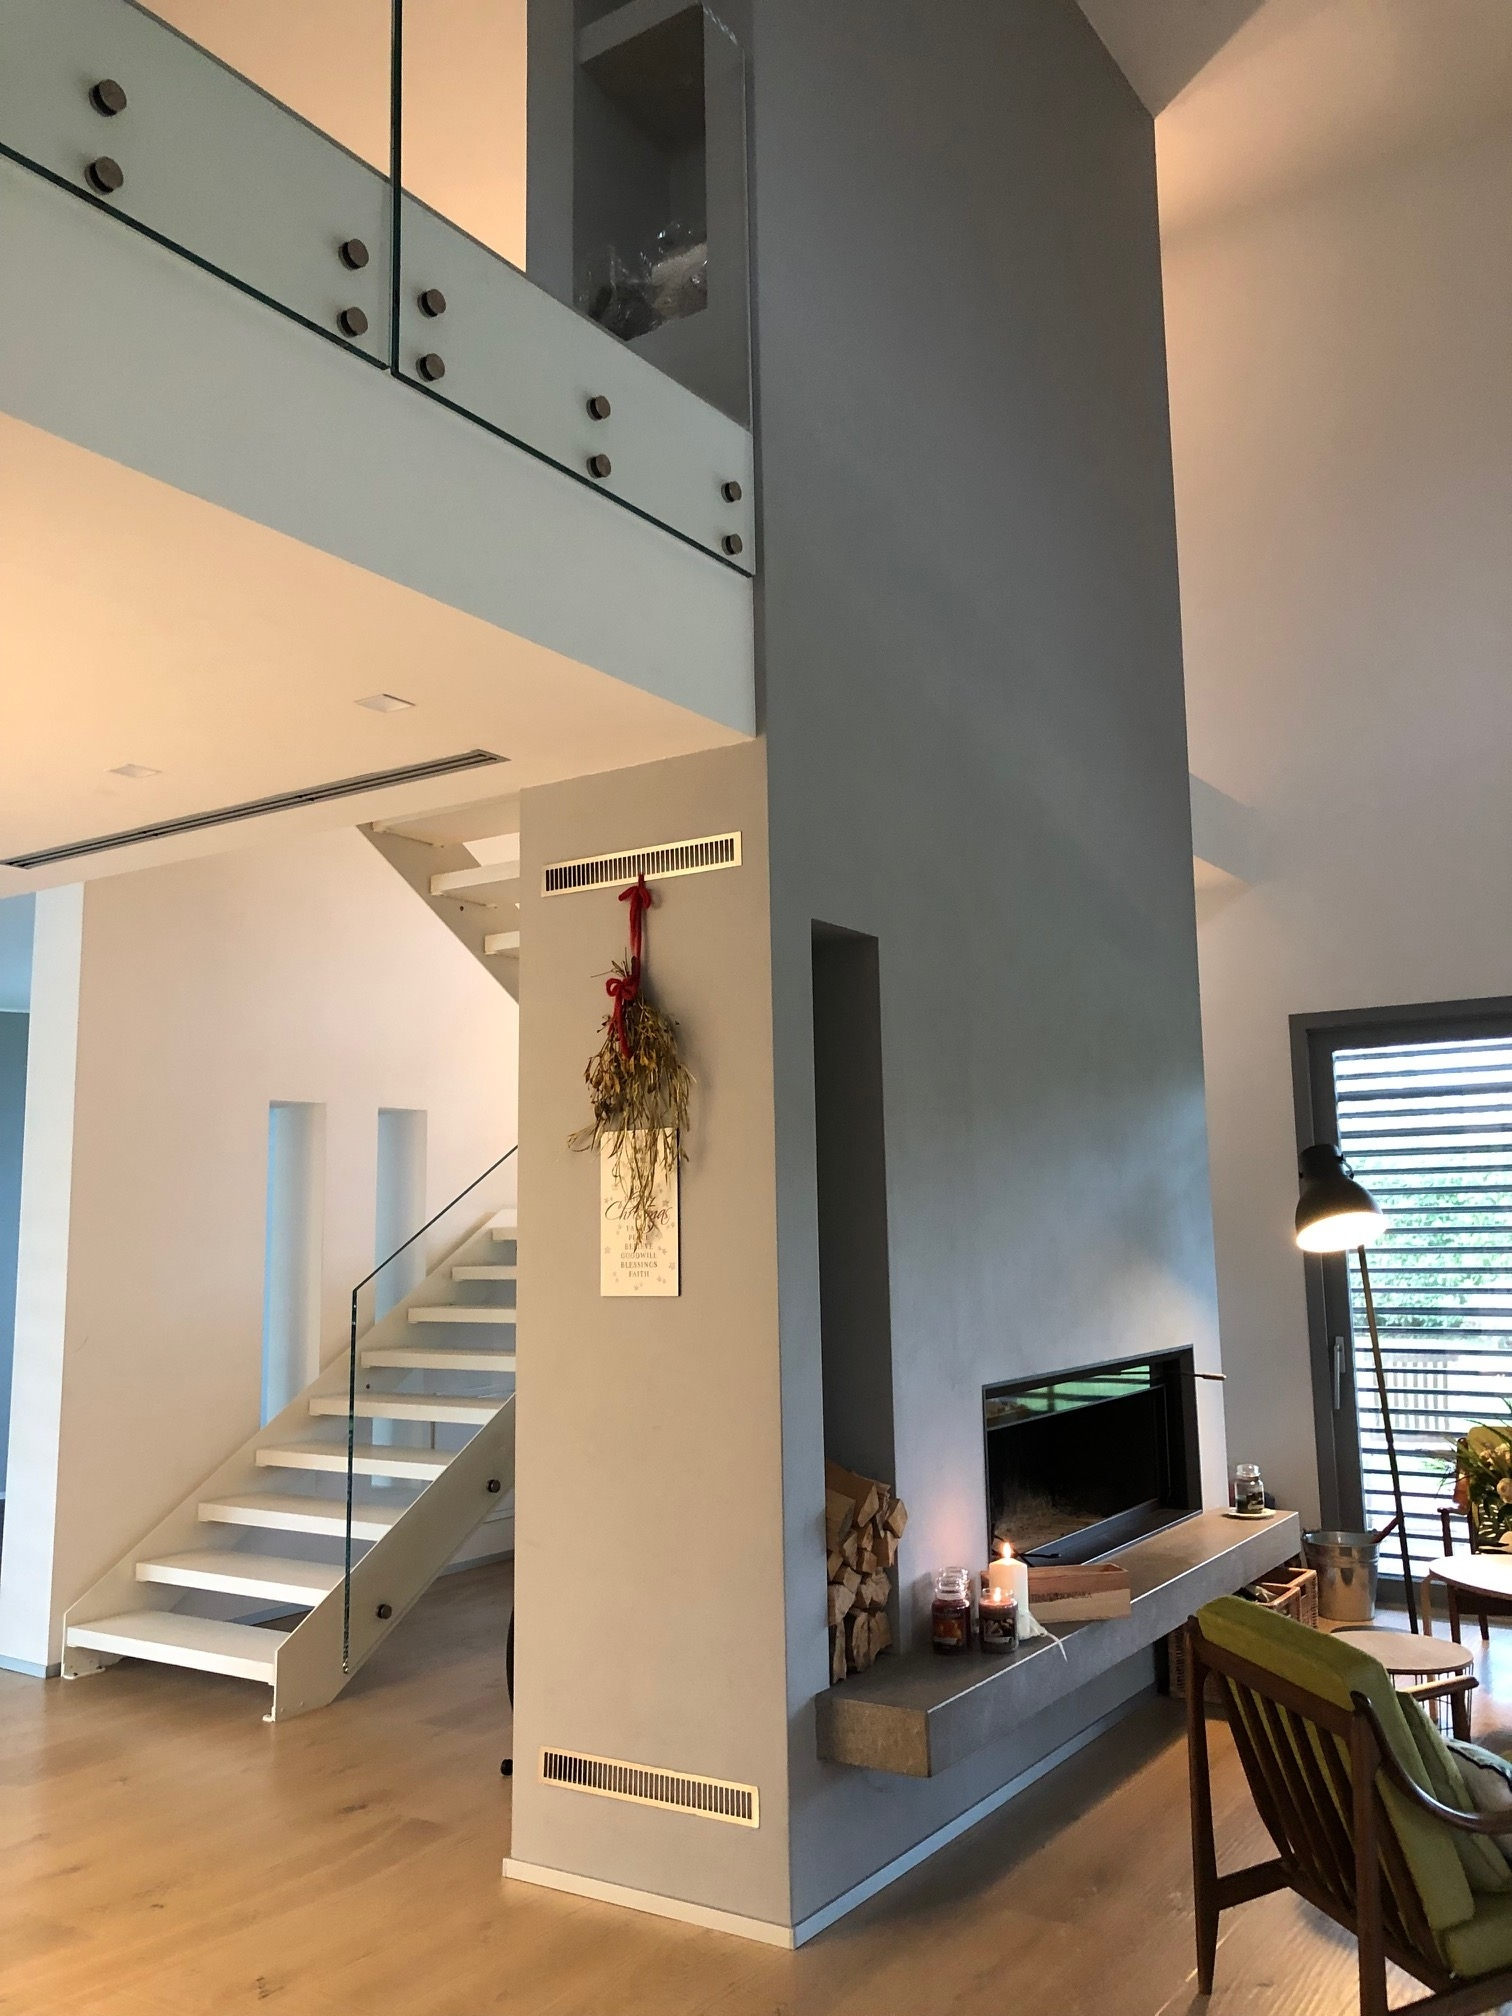 Home Interior Stairs Design Link Infinity Cast Scale | Home Interior Steps Design | Outside | New Model | Balcony | Interesting | Innovative